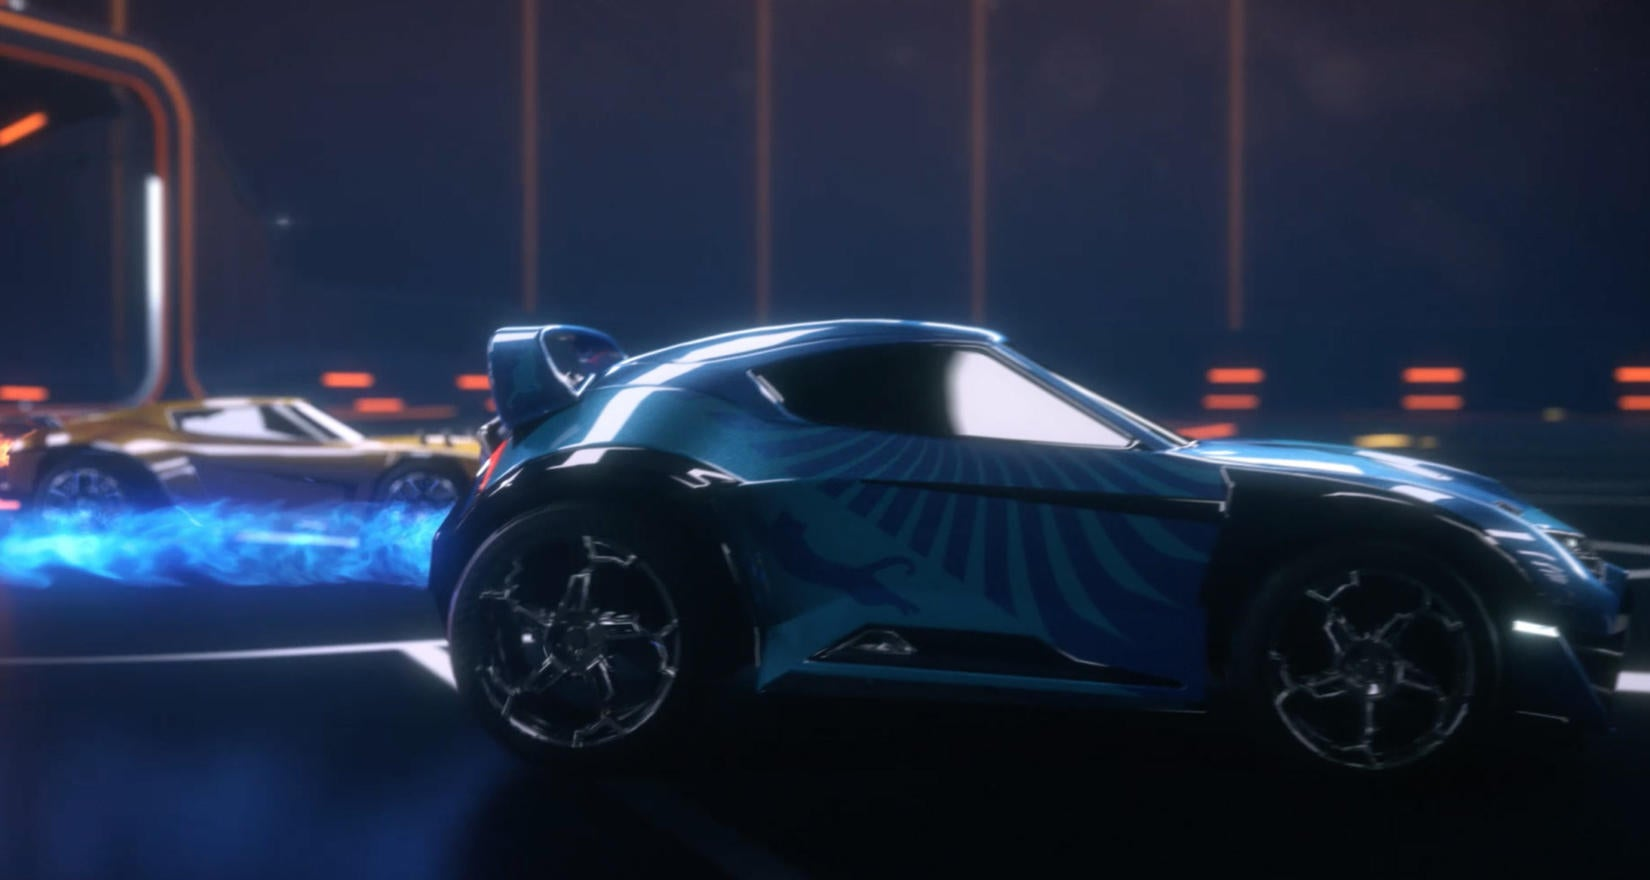 RLCS Returns This Weekend Image